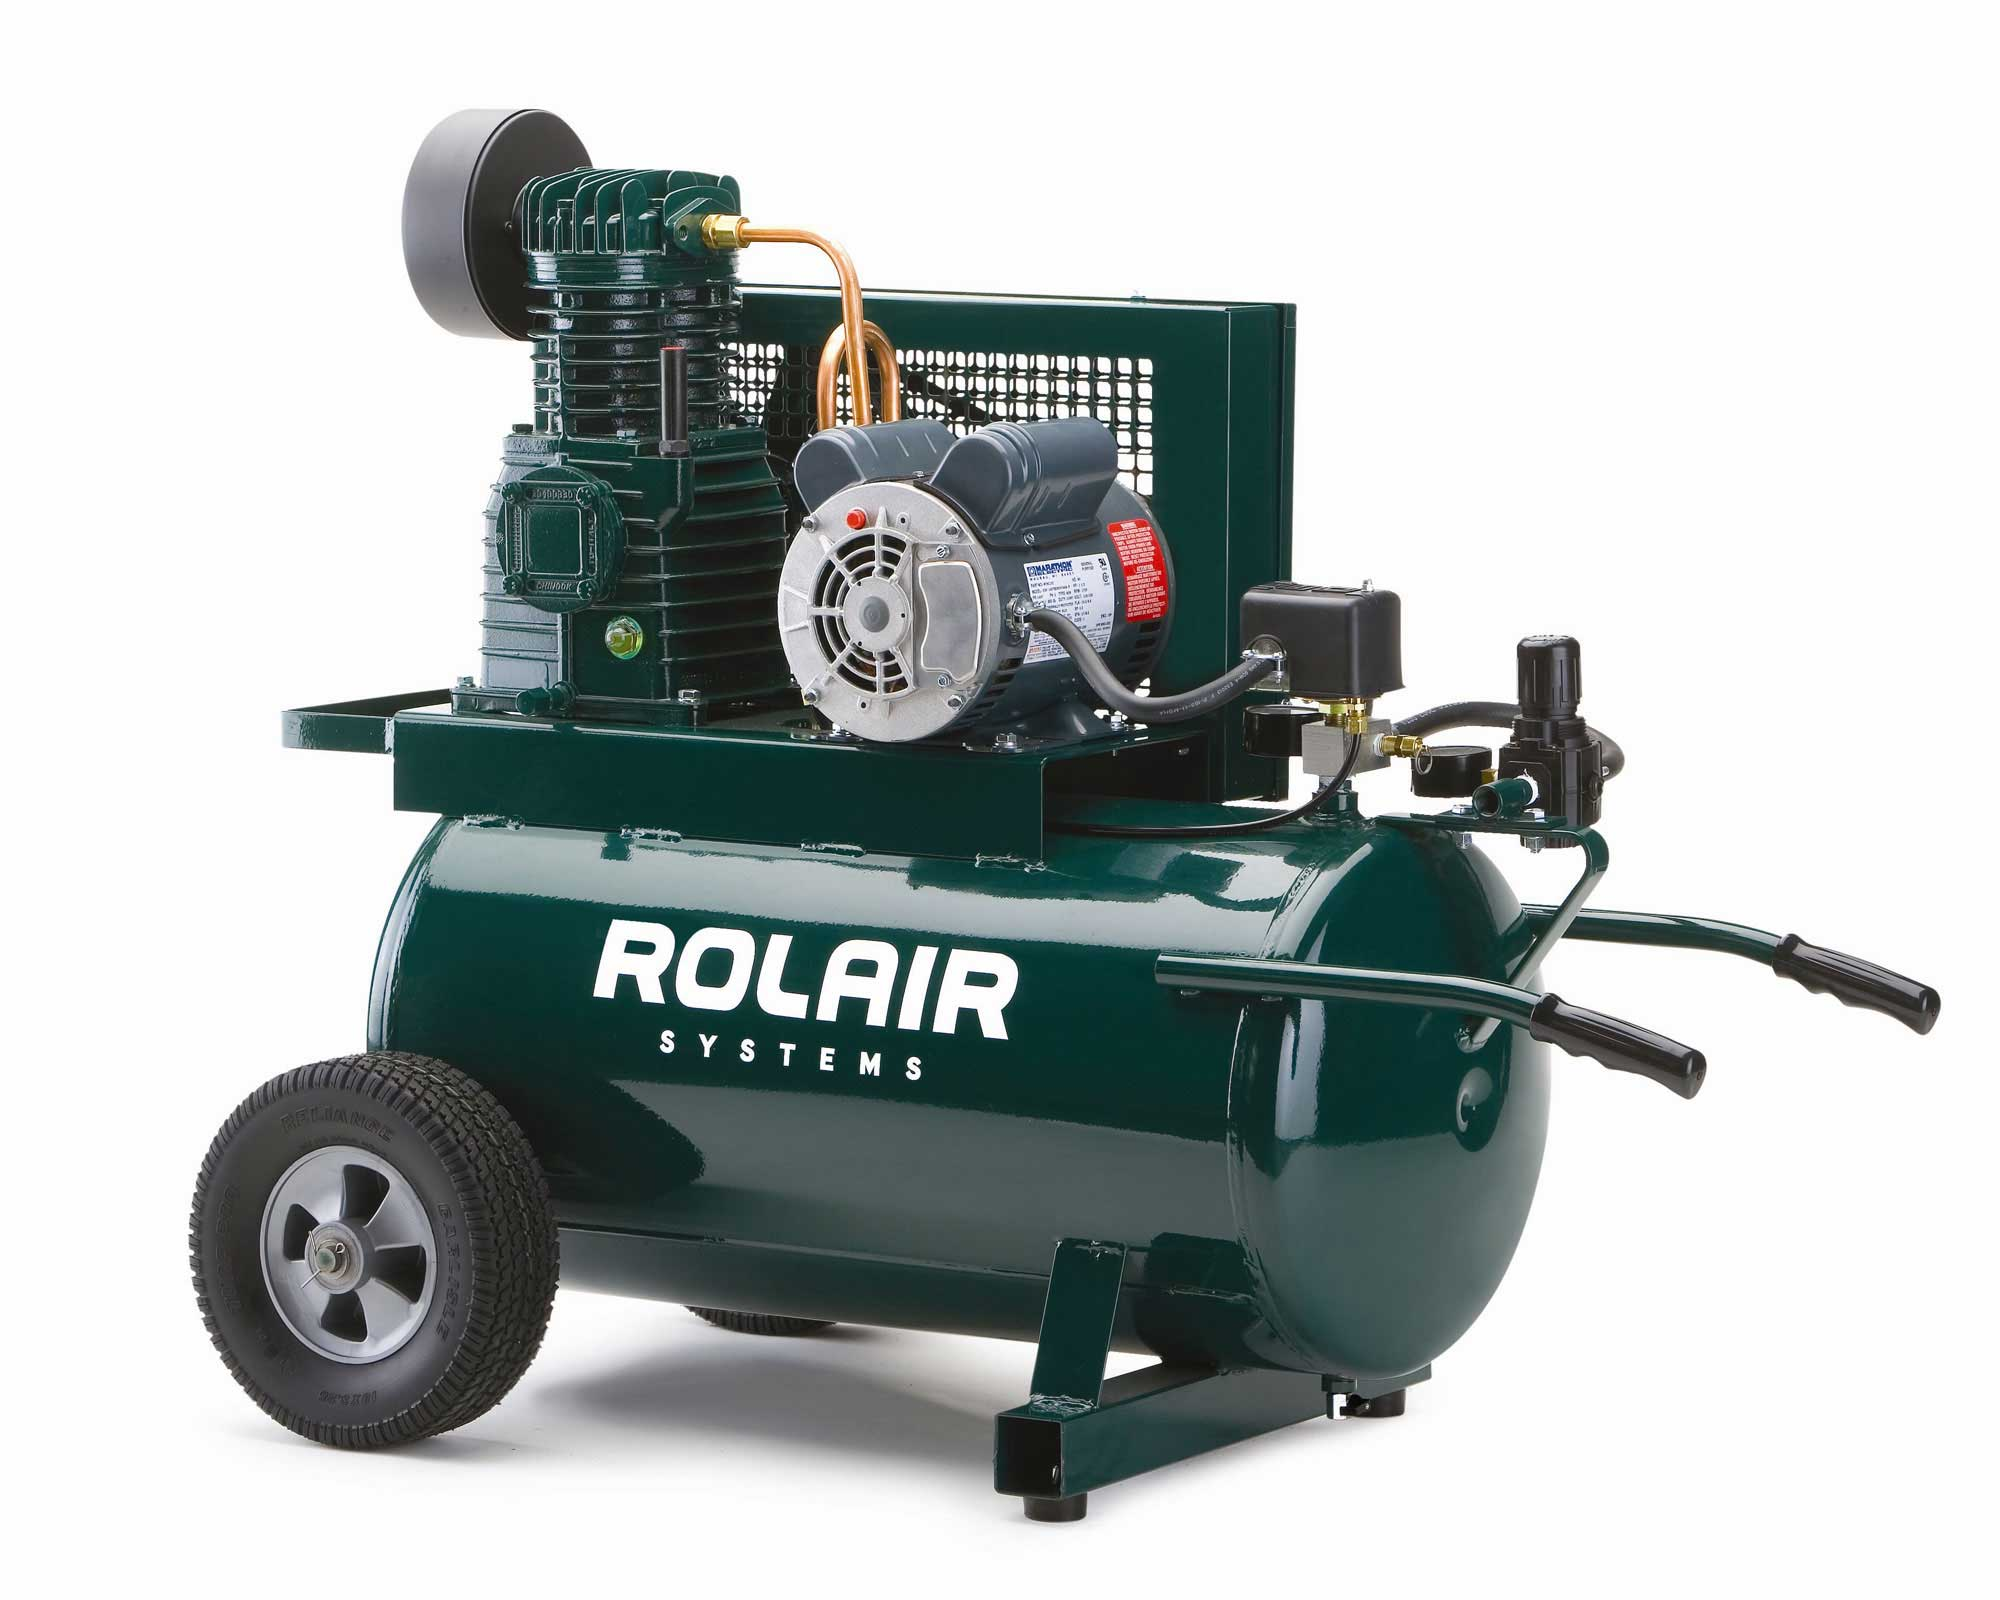 Rolair 1.5 HP 20 Gallon Electric Portable Air Compressor 5520K17A